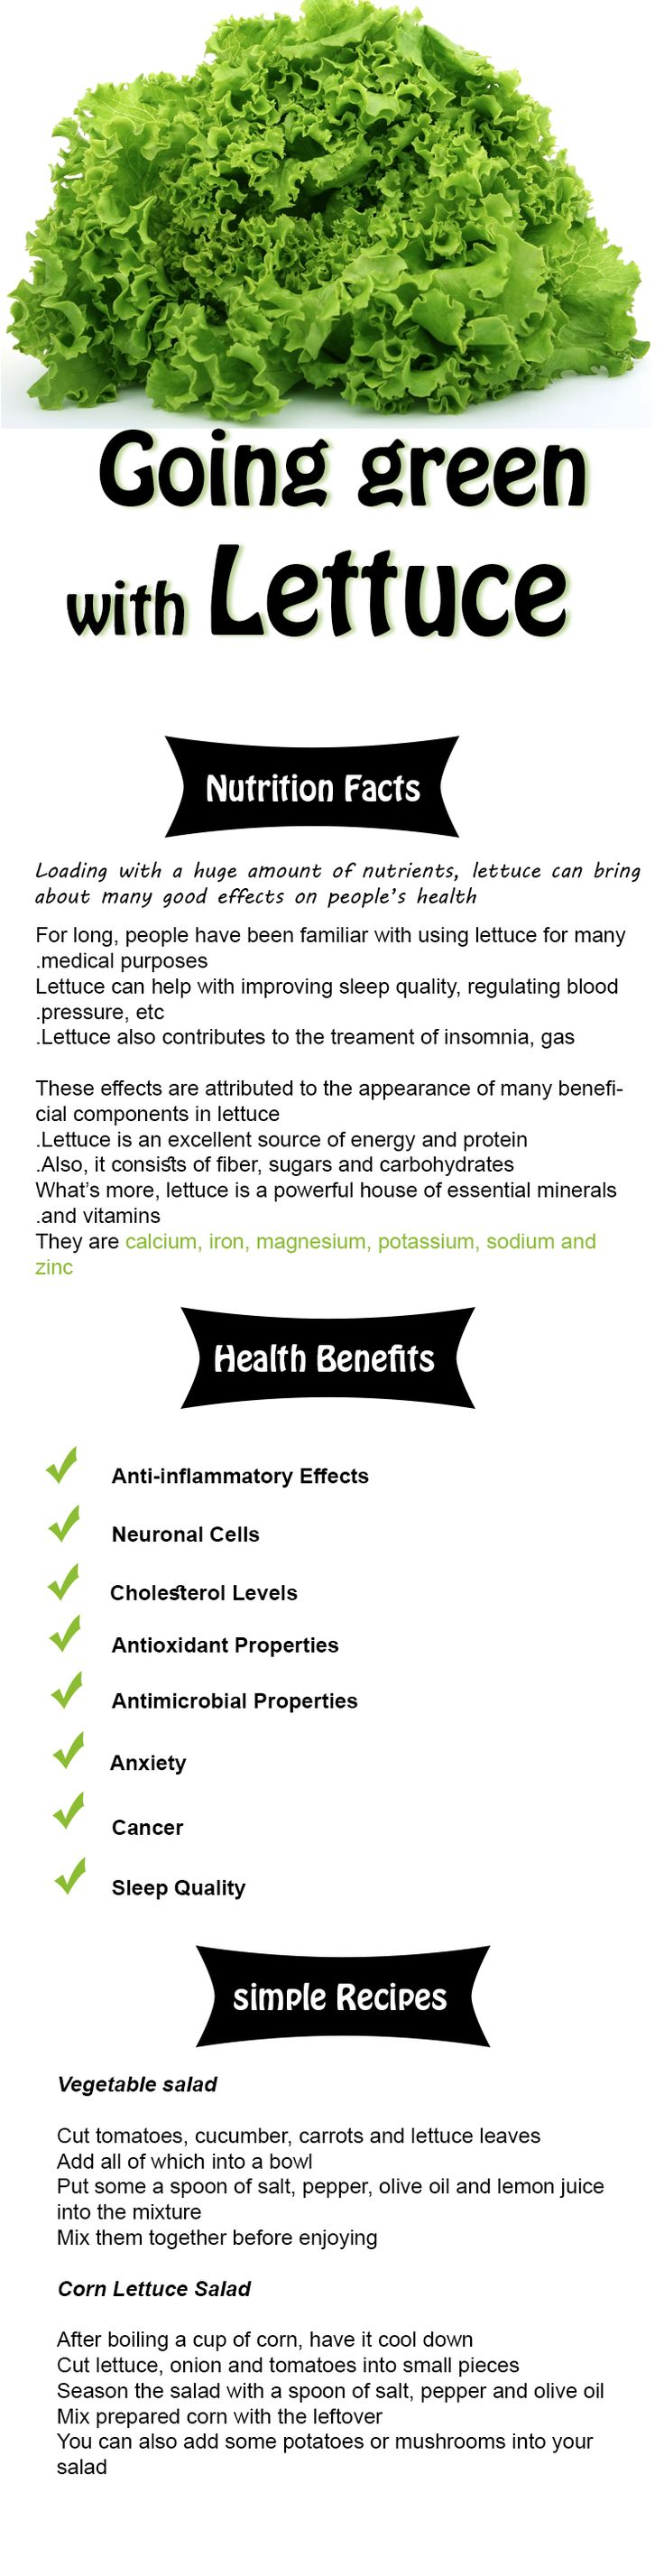 Lettuce: Nutrition Facts and Health Benefits